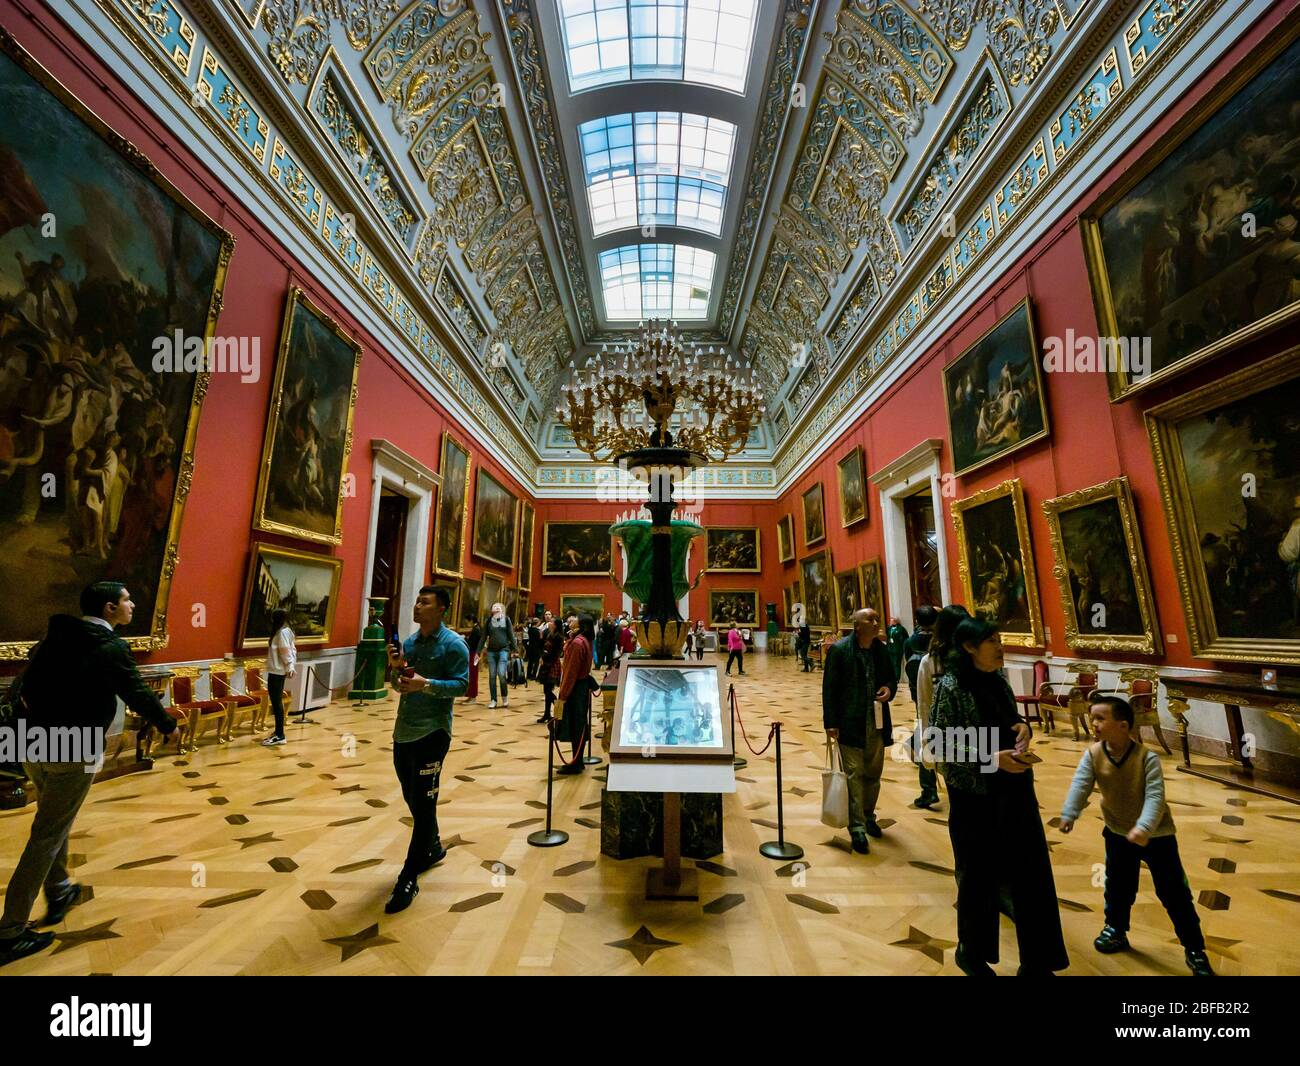 tourists-looking-at-paintings-in-italian